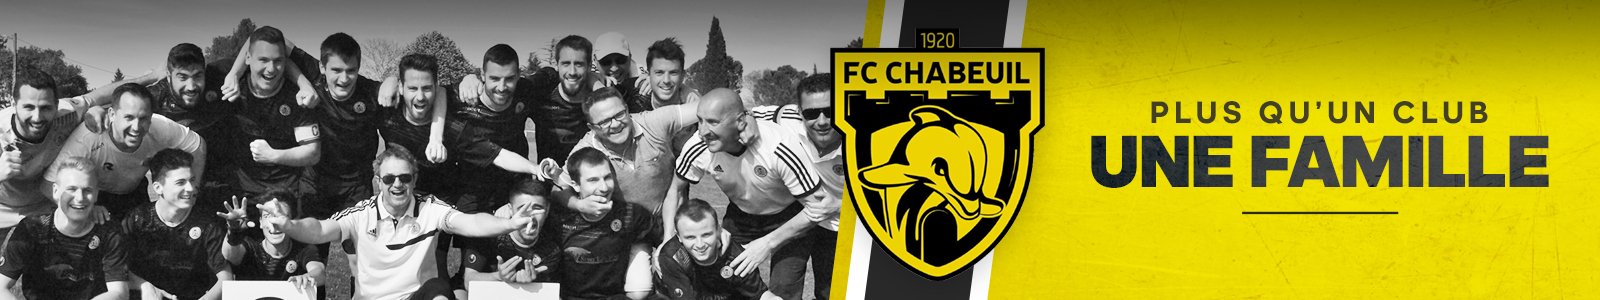 Site Internet officiel du club de football Football Club Chabeuil